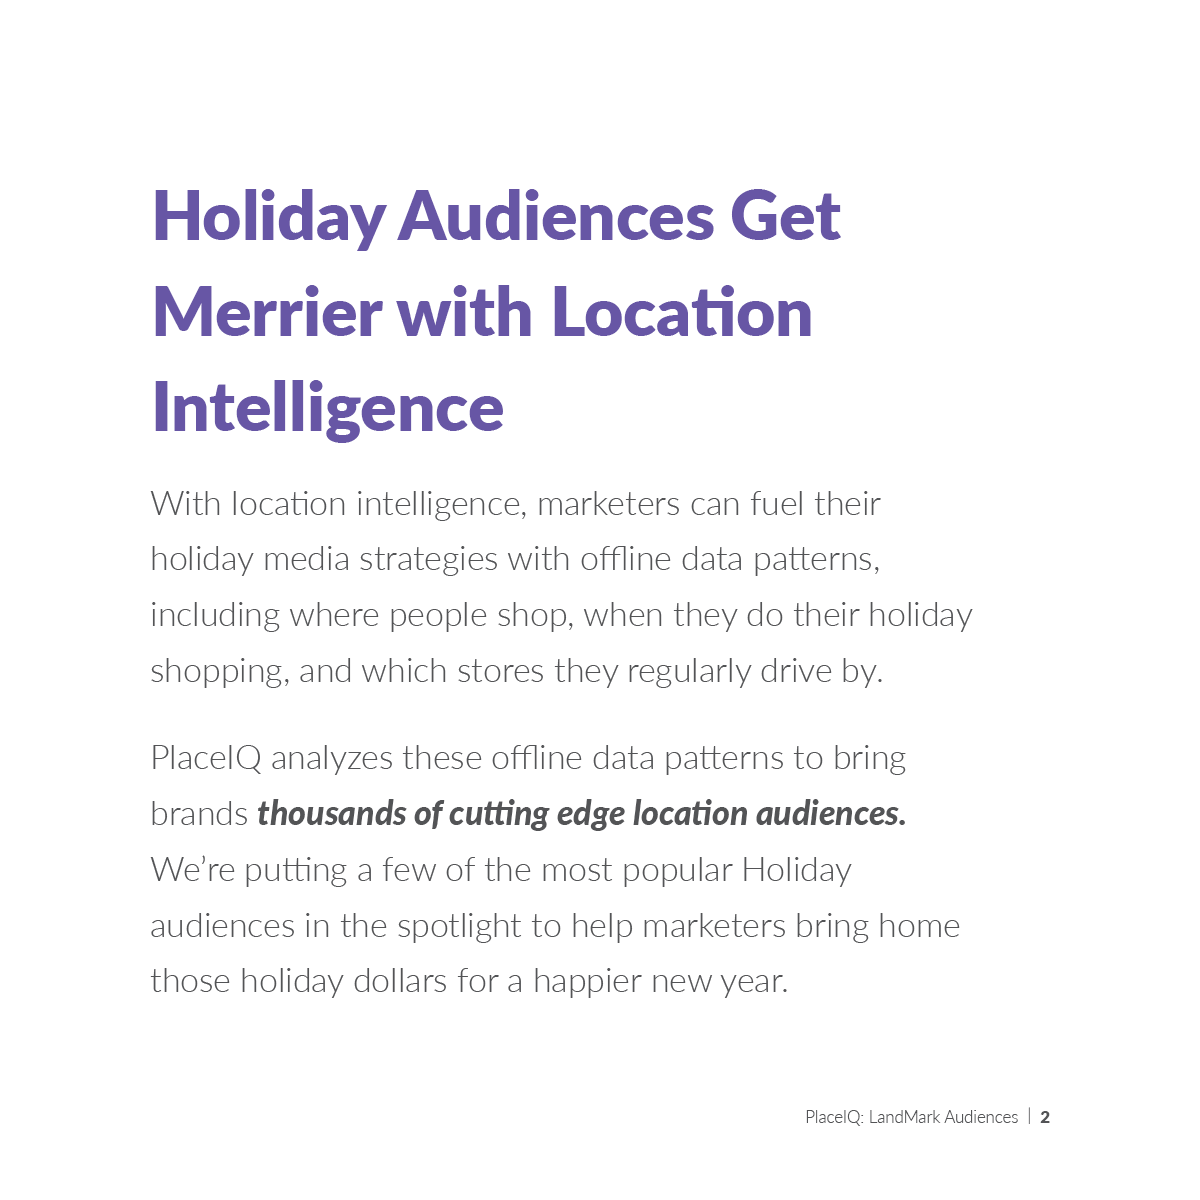 Holiday Audiences Get Merrier with Location Intelligence